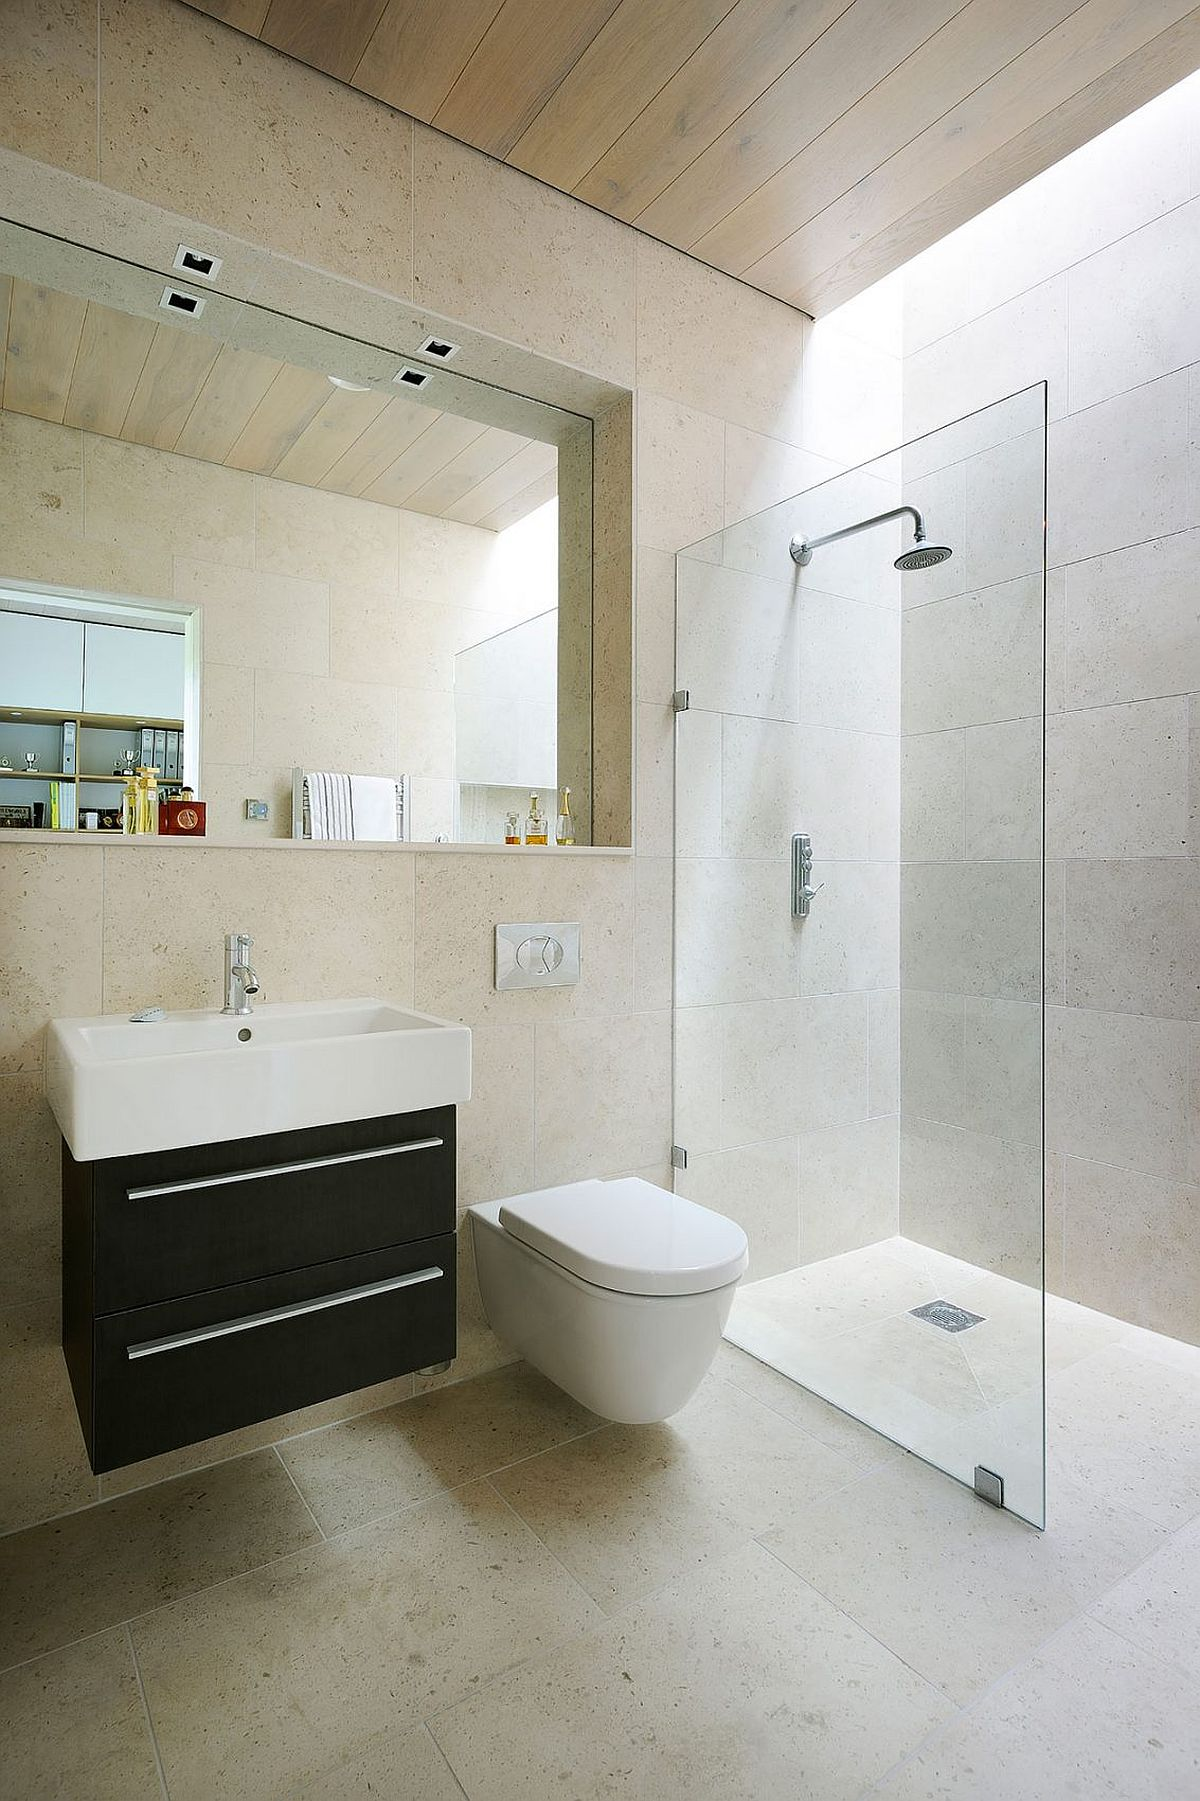 Small floating vanity and corner glass shower area for contemporary bathroom